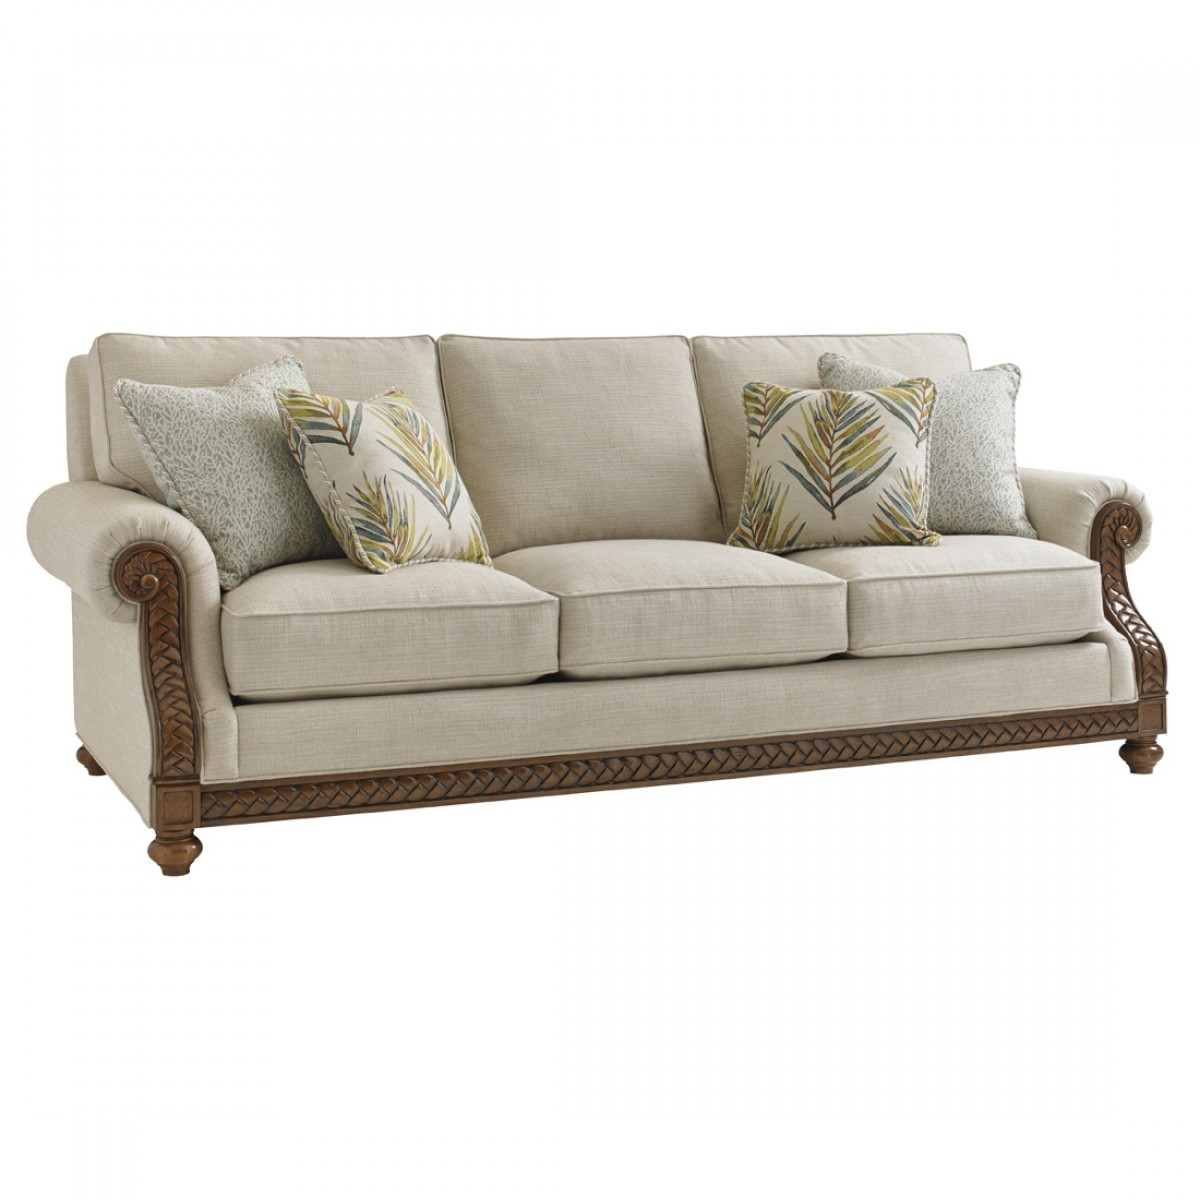 Tommy Bahama Home Bali Hai Shoreline Sofa With Regard To Marcus Oyster 6 Piece Sectionals With Power Headrest And Usb (View 6 of 30)